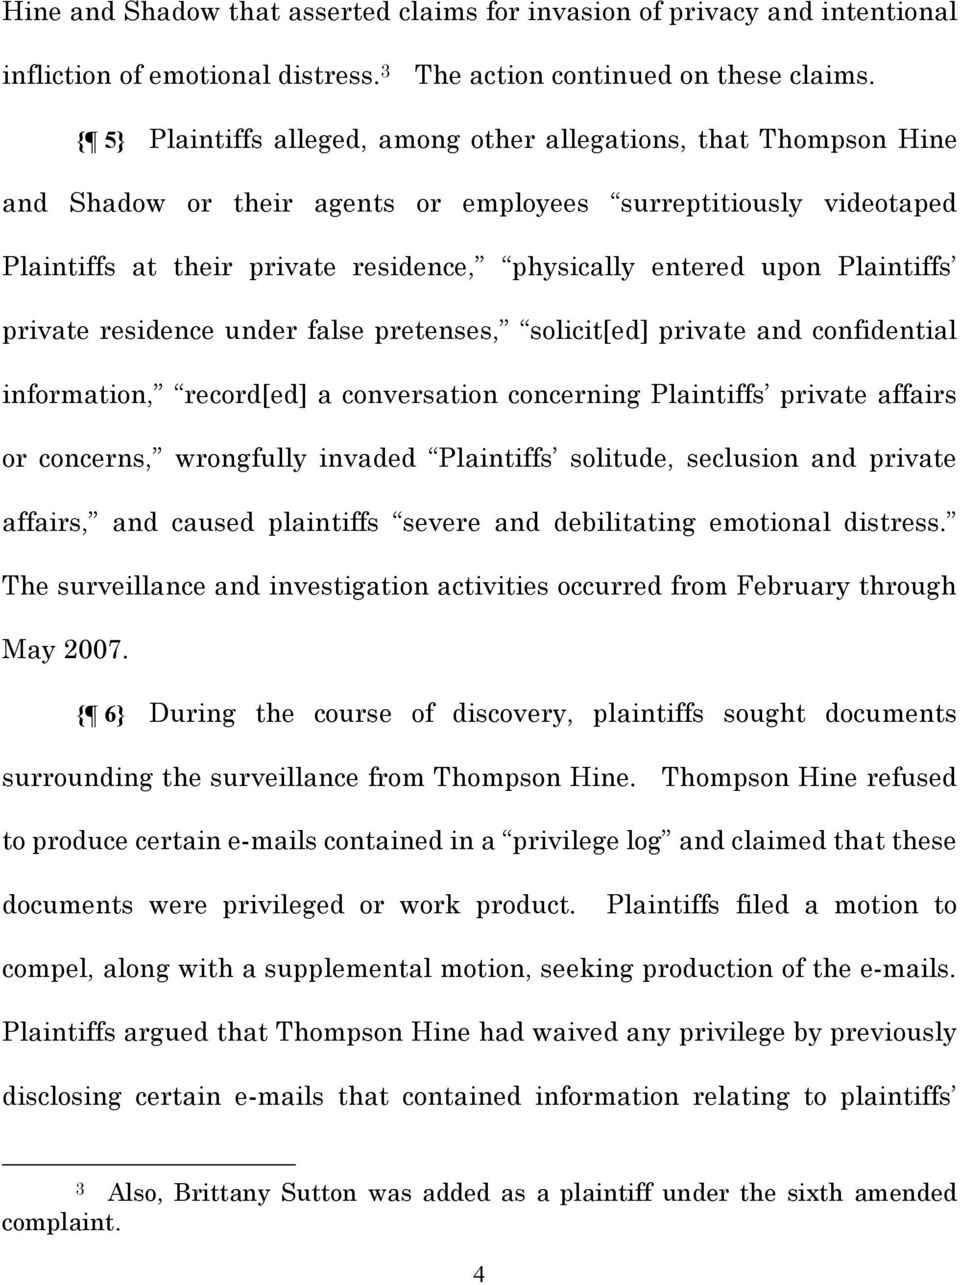 Plaintiffs private residence under false pretenses, solicit[ed] private and confidential information, record[ed] a conversation concerning Plaintiffs private affairs or concerns, wrongfully invaded